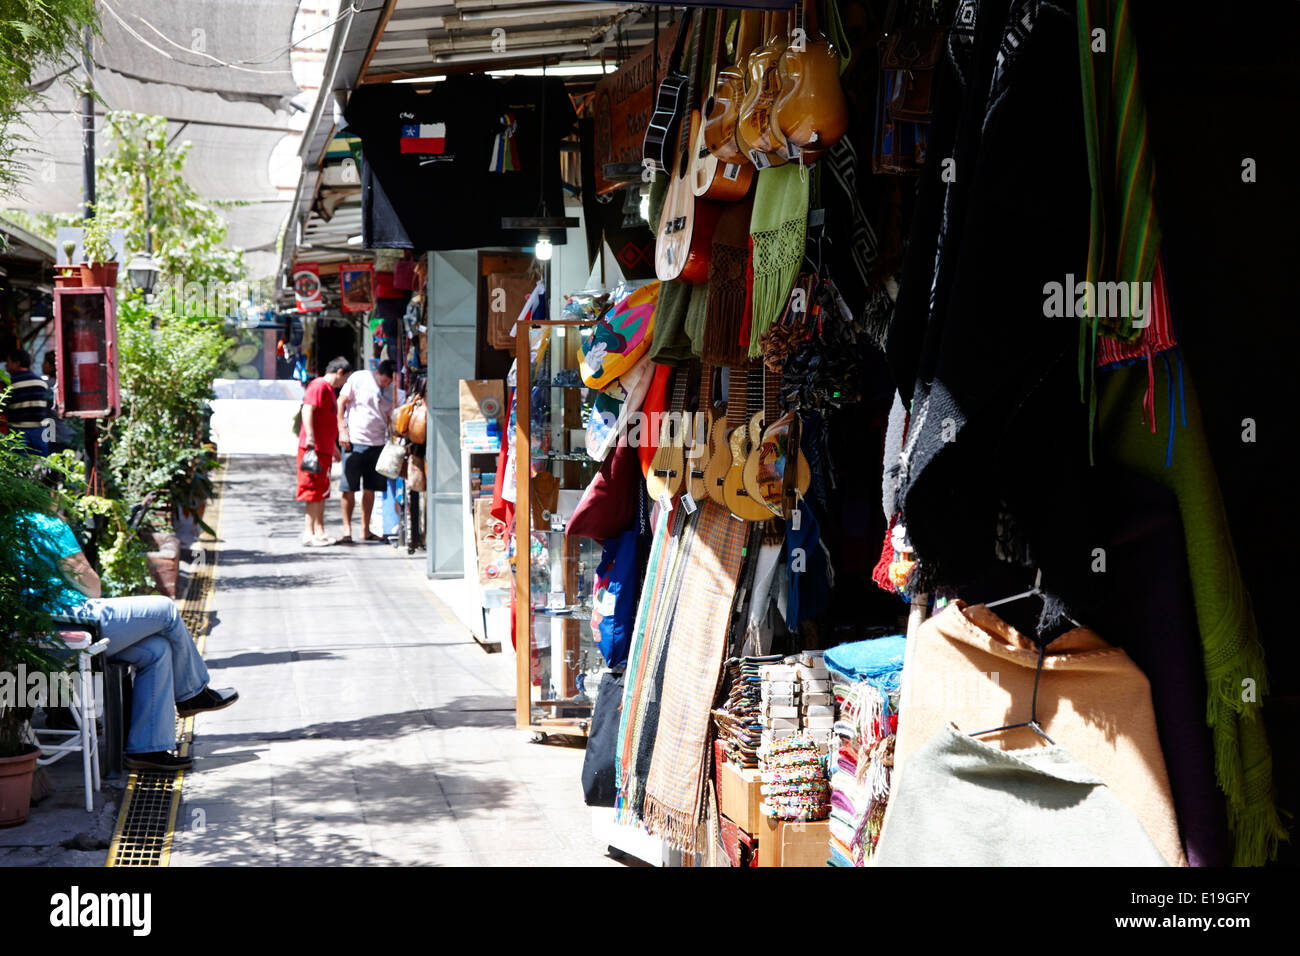 santa lucia arts and crafts market fair Santiago Chile - Stock Image